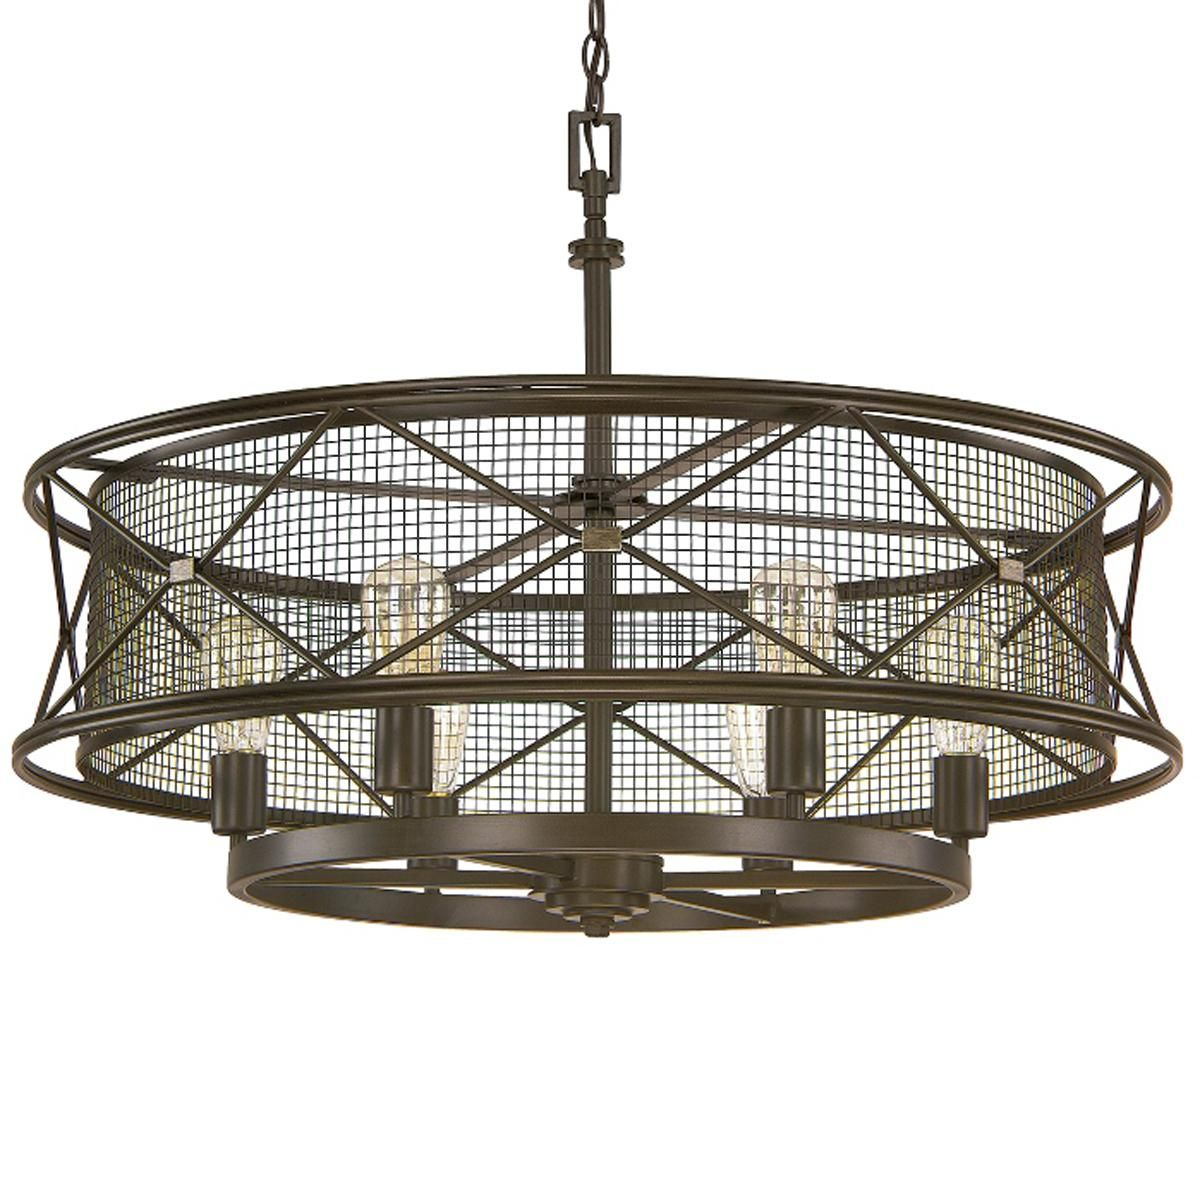 X cage urban 6 light chandelier lighting pinterest x cage urban 6 light chandelier arubaitofo Choice Image